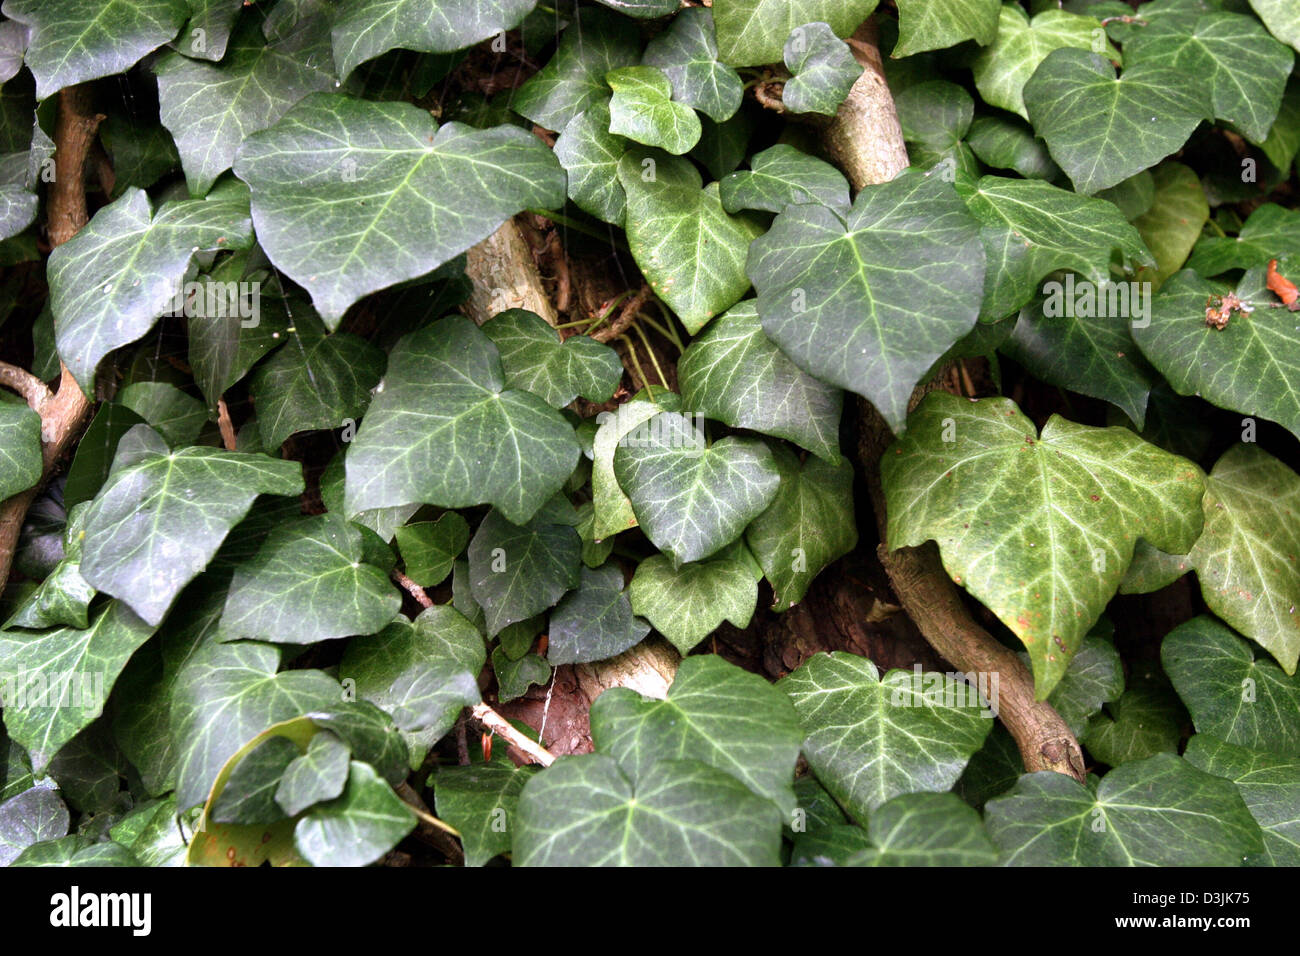 (dpa) - Ivy leaves pictured in Herreninsel, Germany, 14 September 2004. - Stock Image